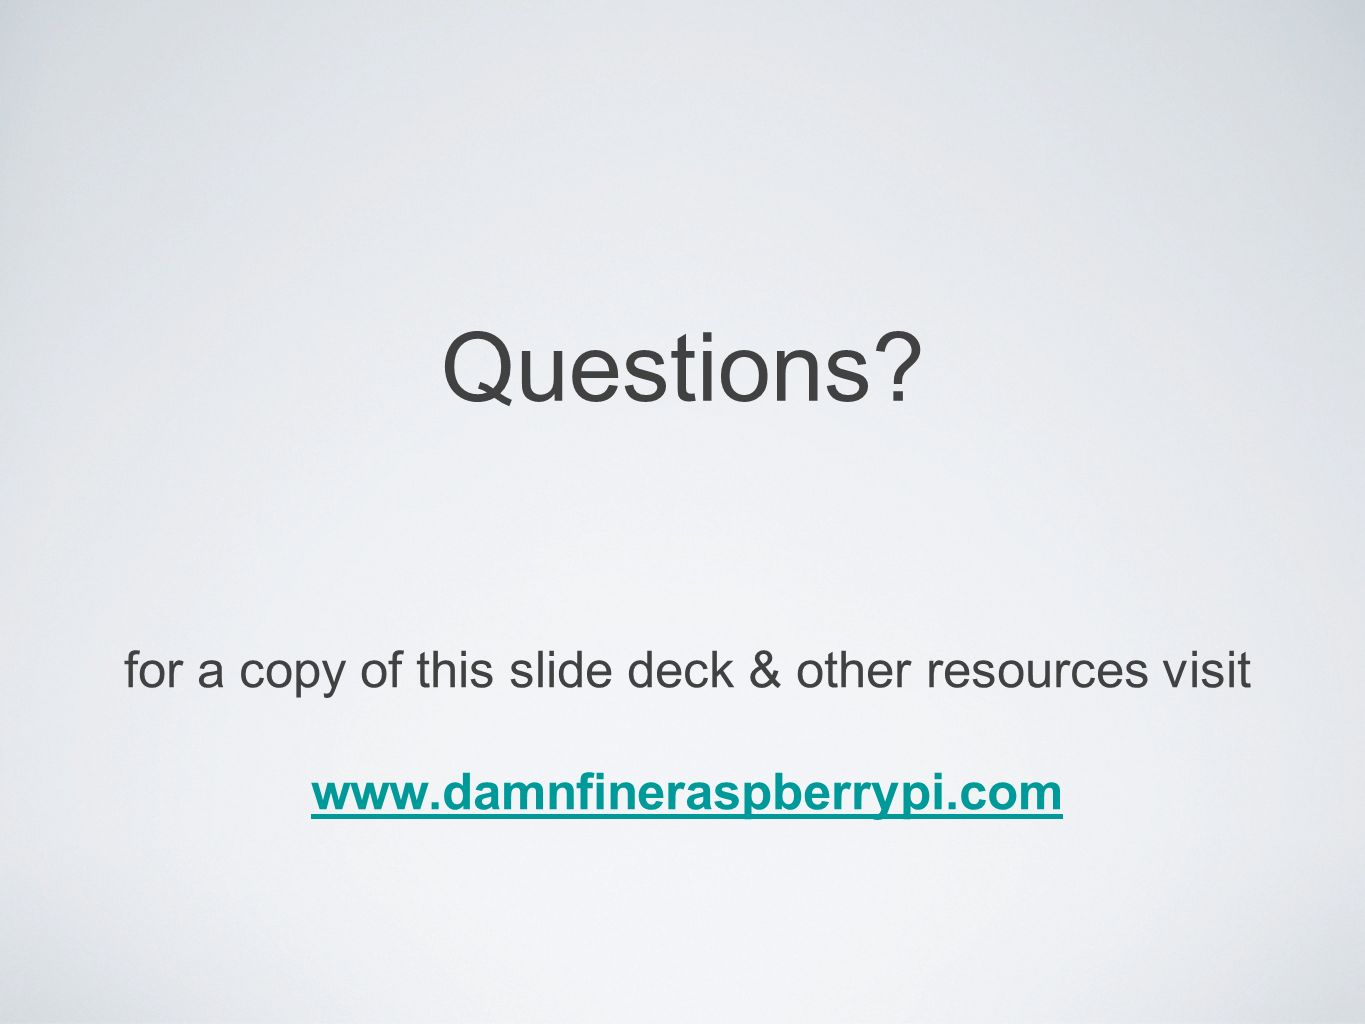 Questions? for a copy of this slide deck & other resources visit www.damnfineraspberrypi.com